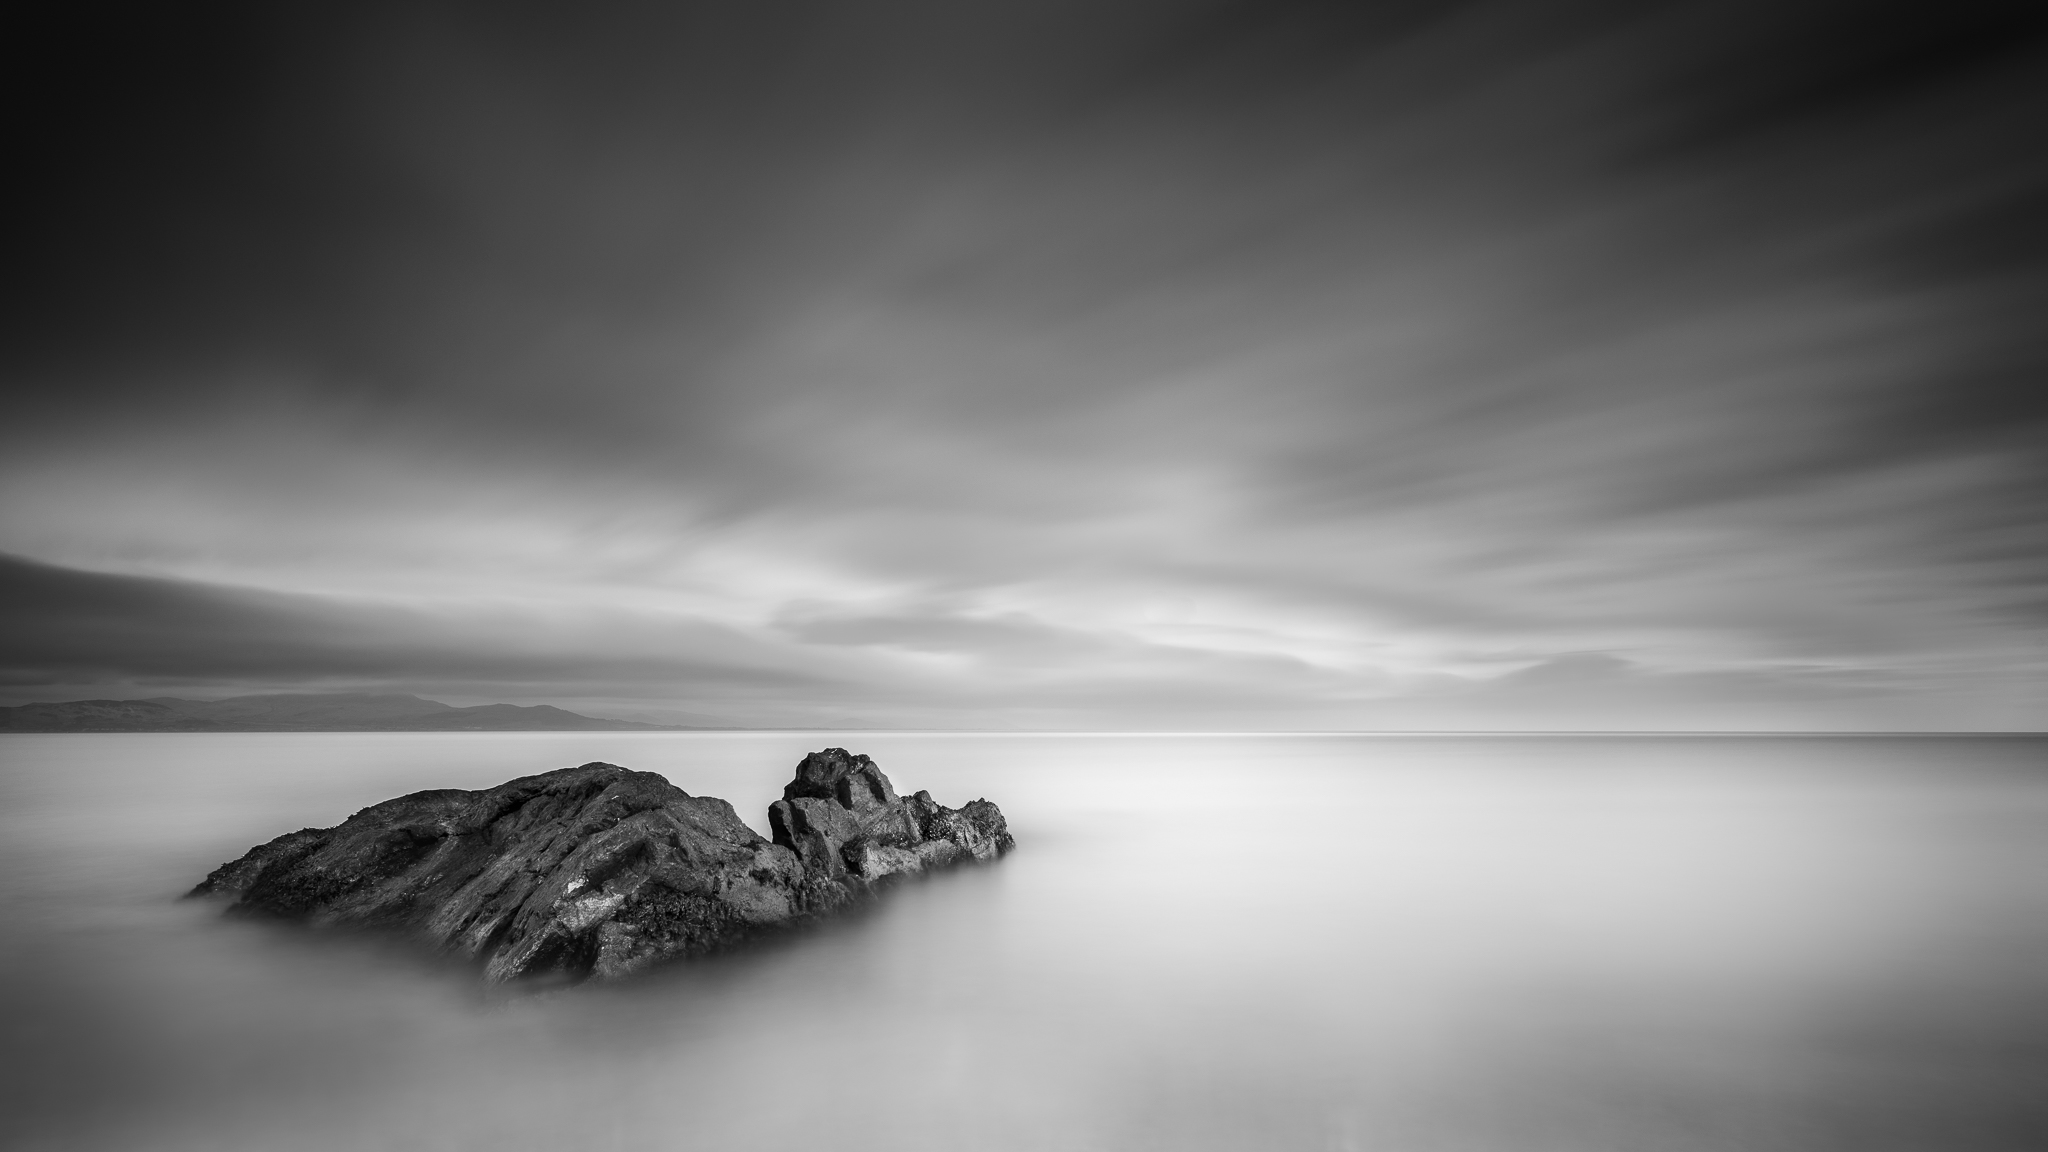 long exposure fine art photography workshop ireland how to